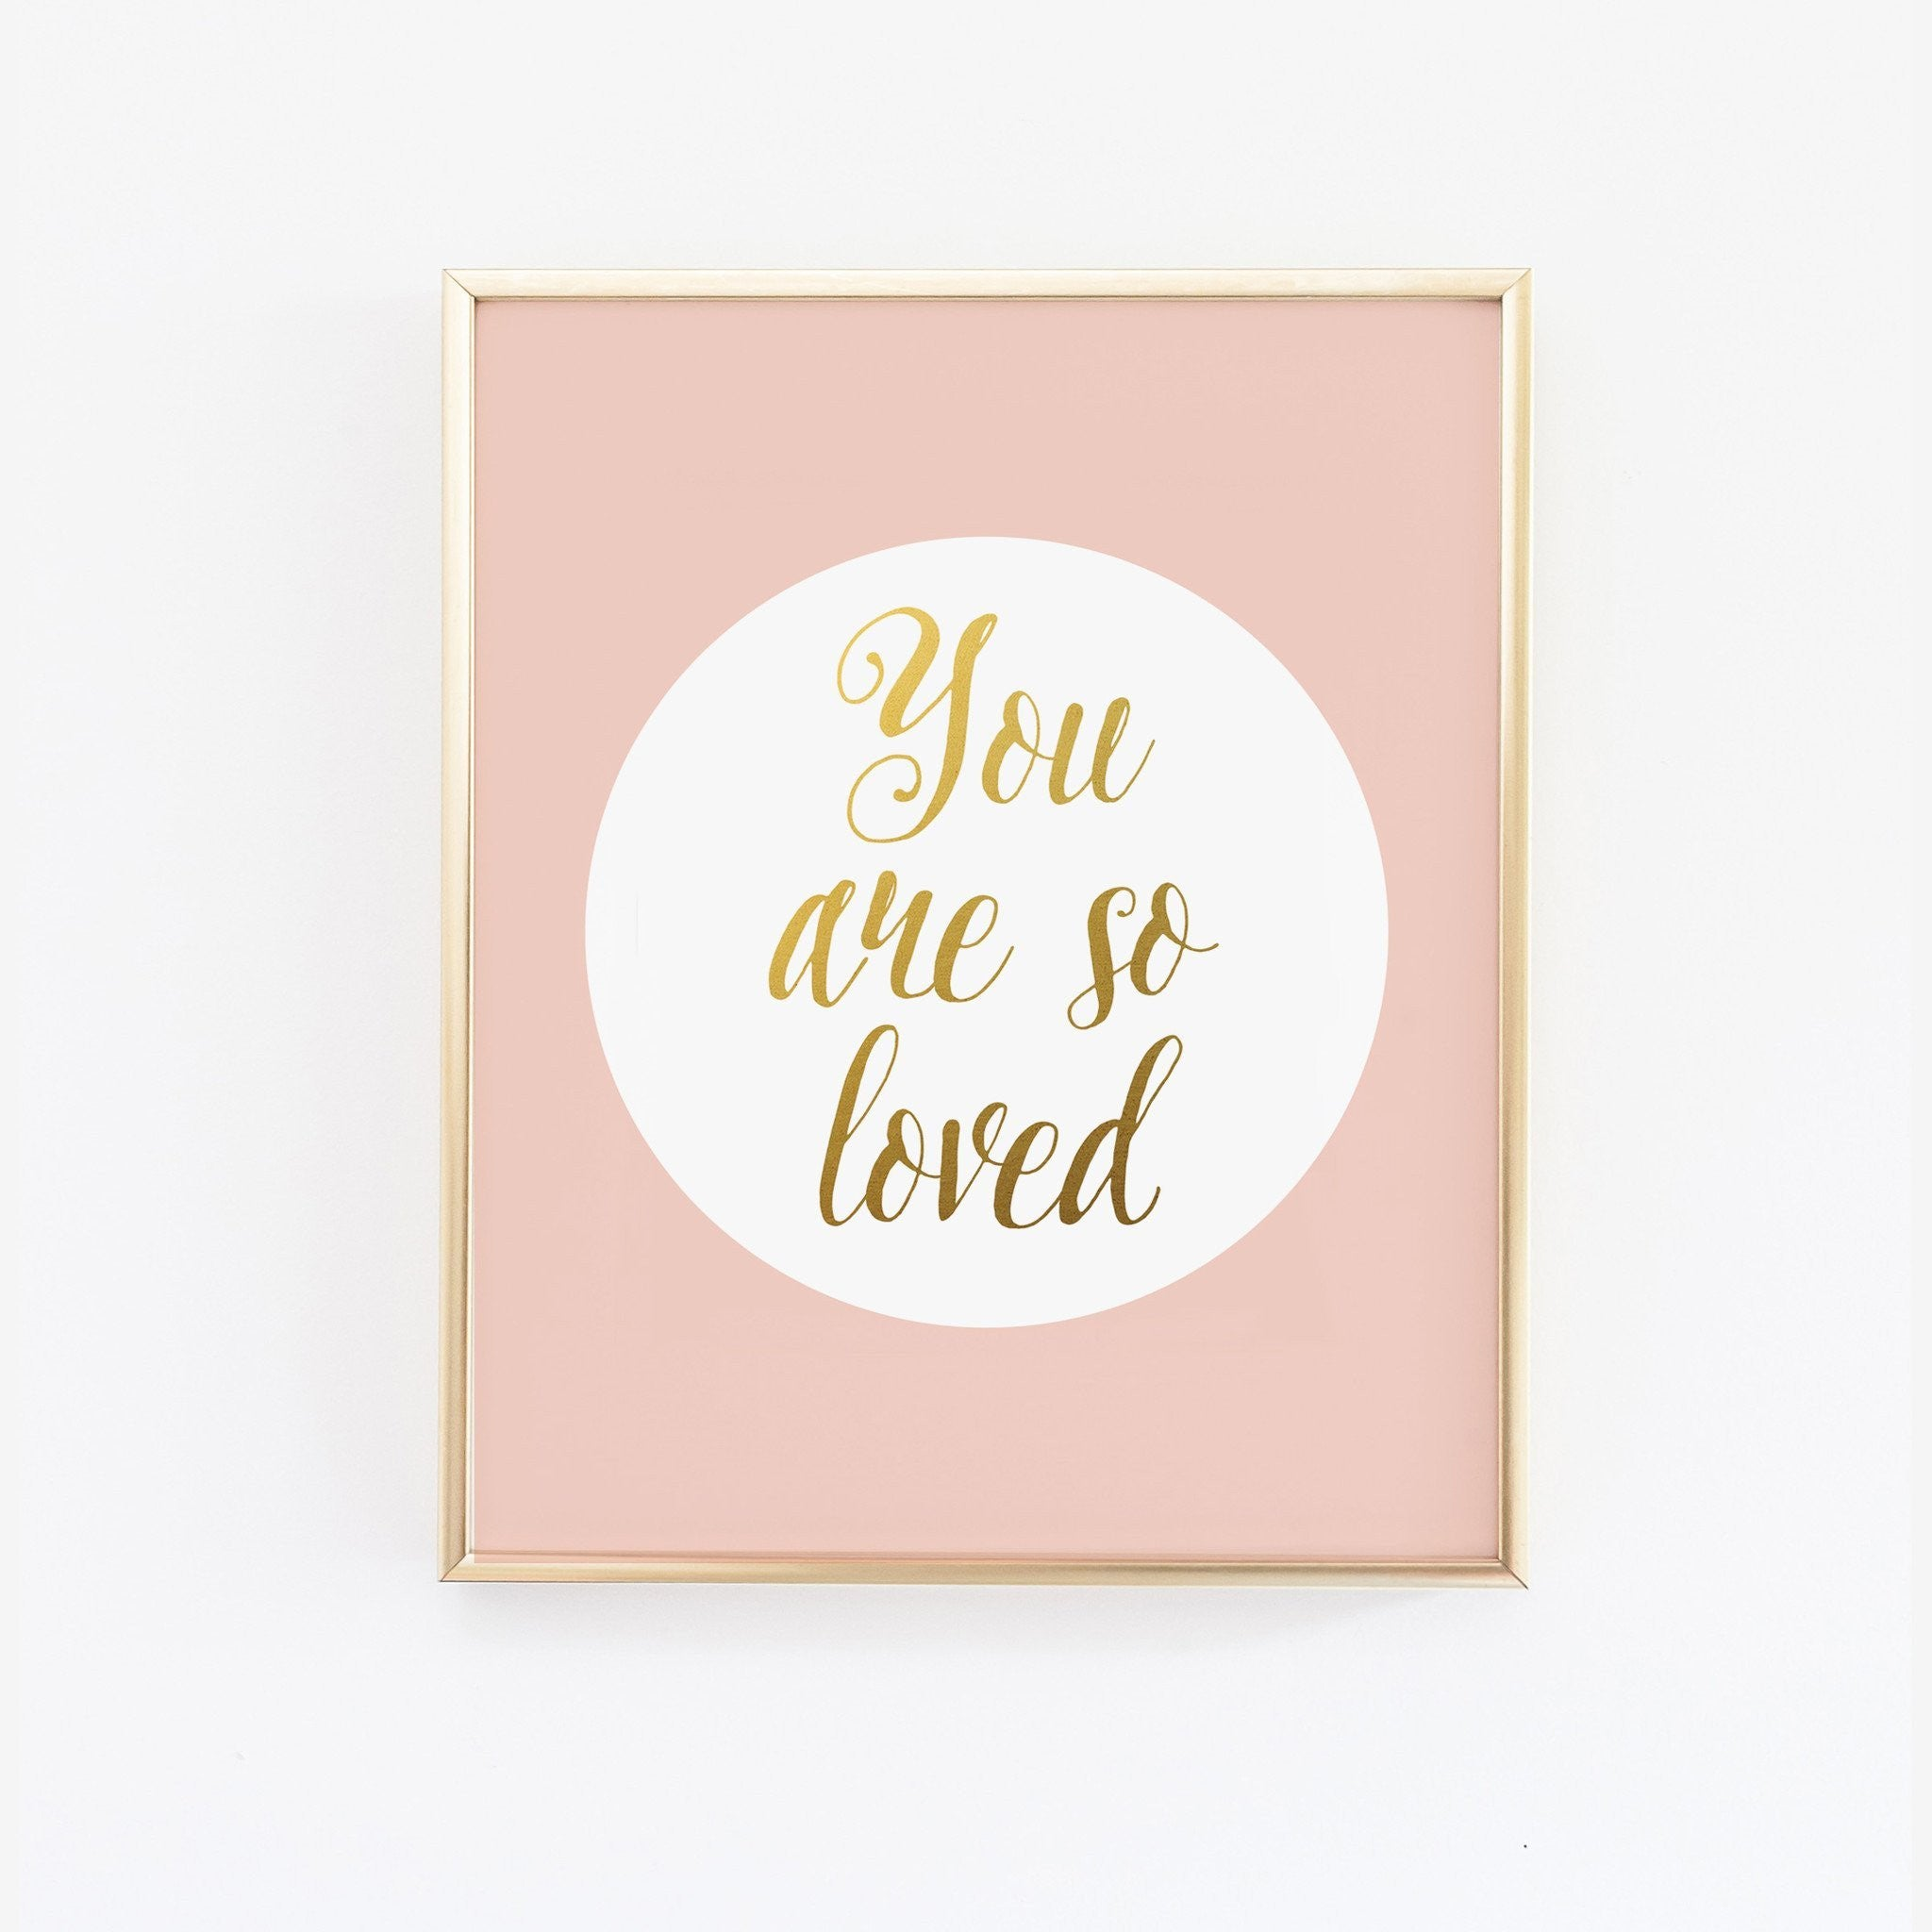 Wall and Wonder Wall Prints You are so loved in Blush - Faux Gold Foil Wall Print